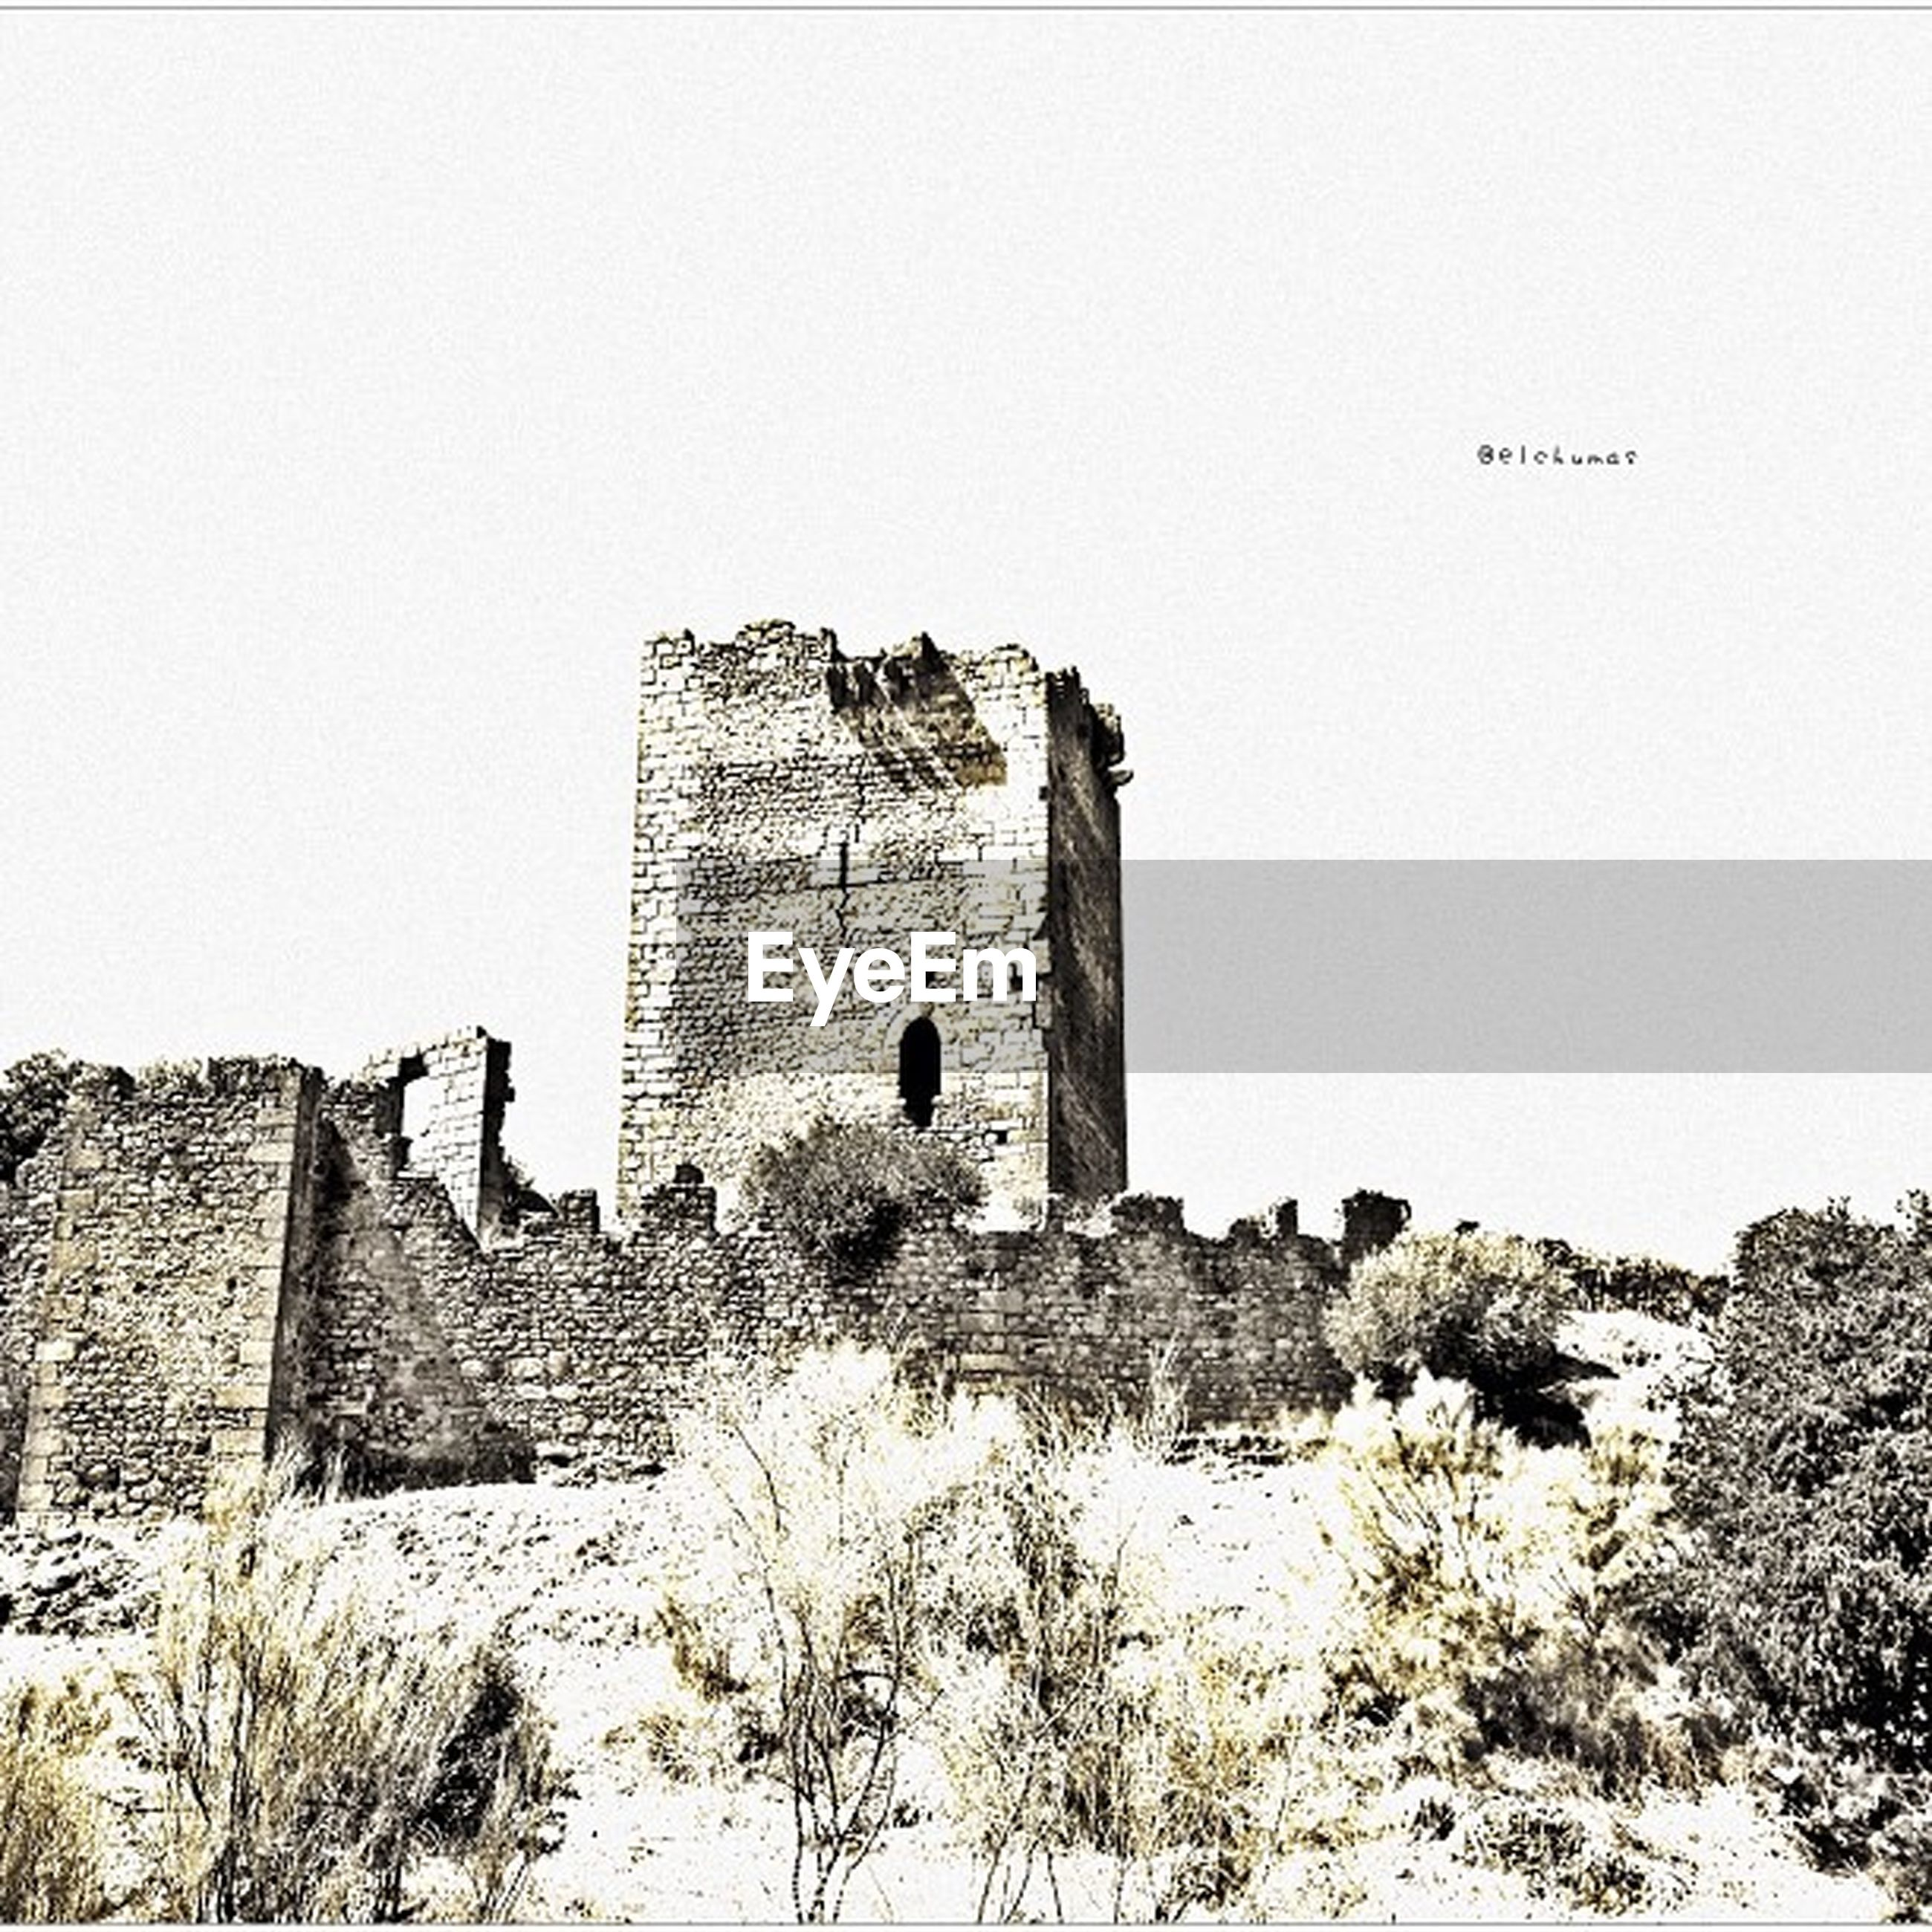 architecture, built structure, building exterior, clear sky, history, low angle view, old ruin, copy space, old, stone wall, abandoned, the past, damaged, ancient, obsolete, deterioration, castle, wall - building feature, run-down, ruined